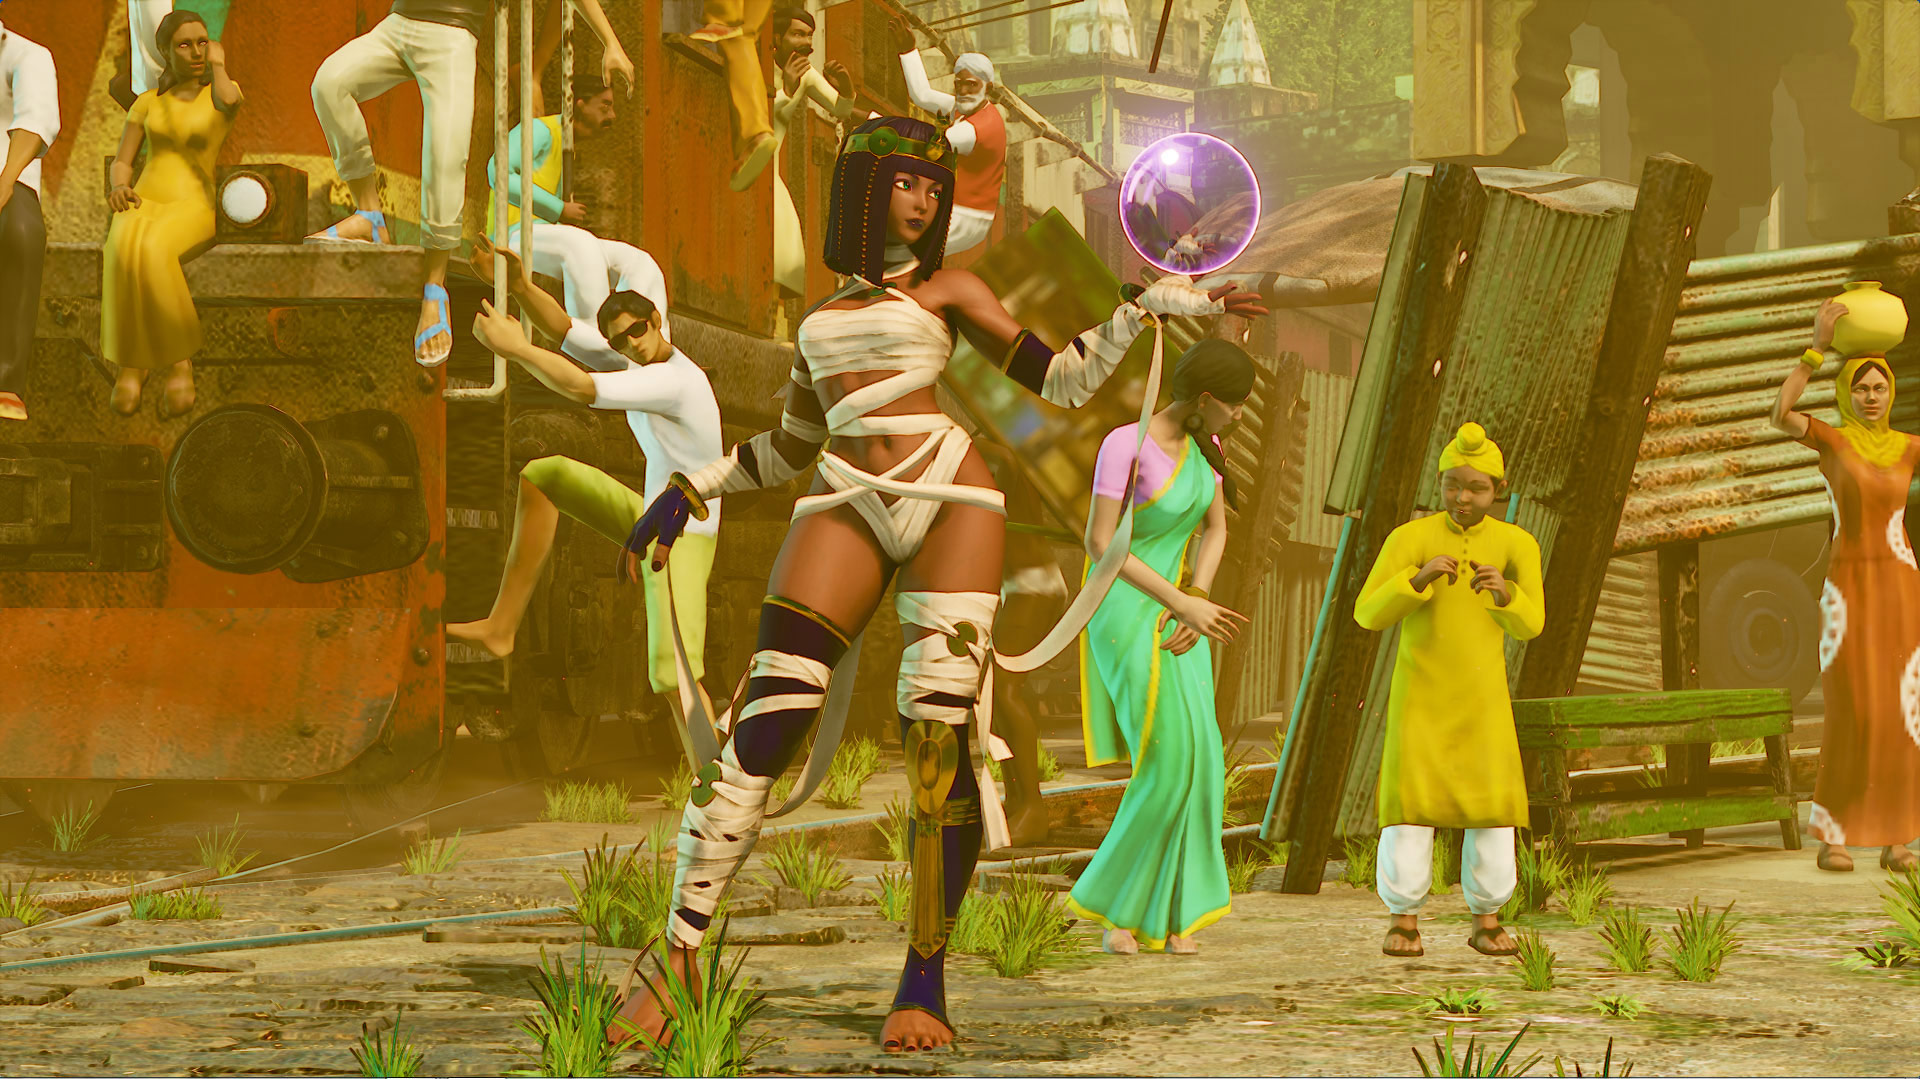 Menat in Street Fighter 5 5 out of 11 image gallery